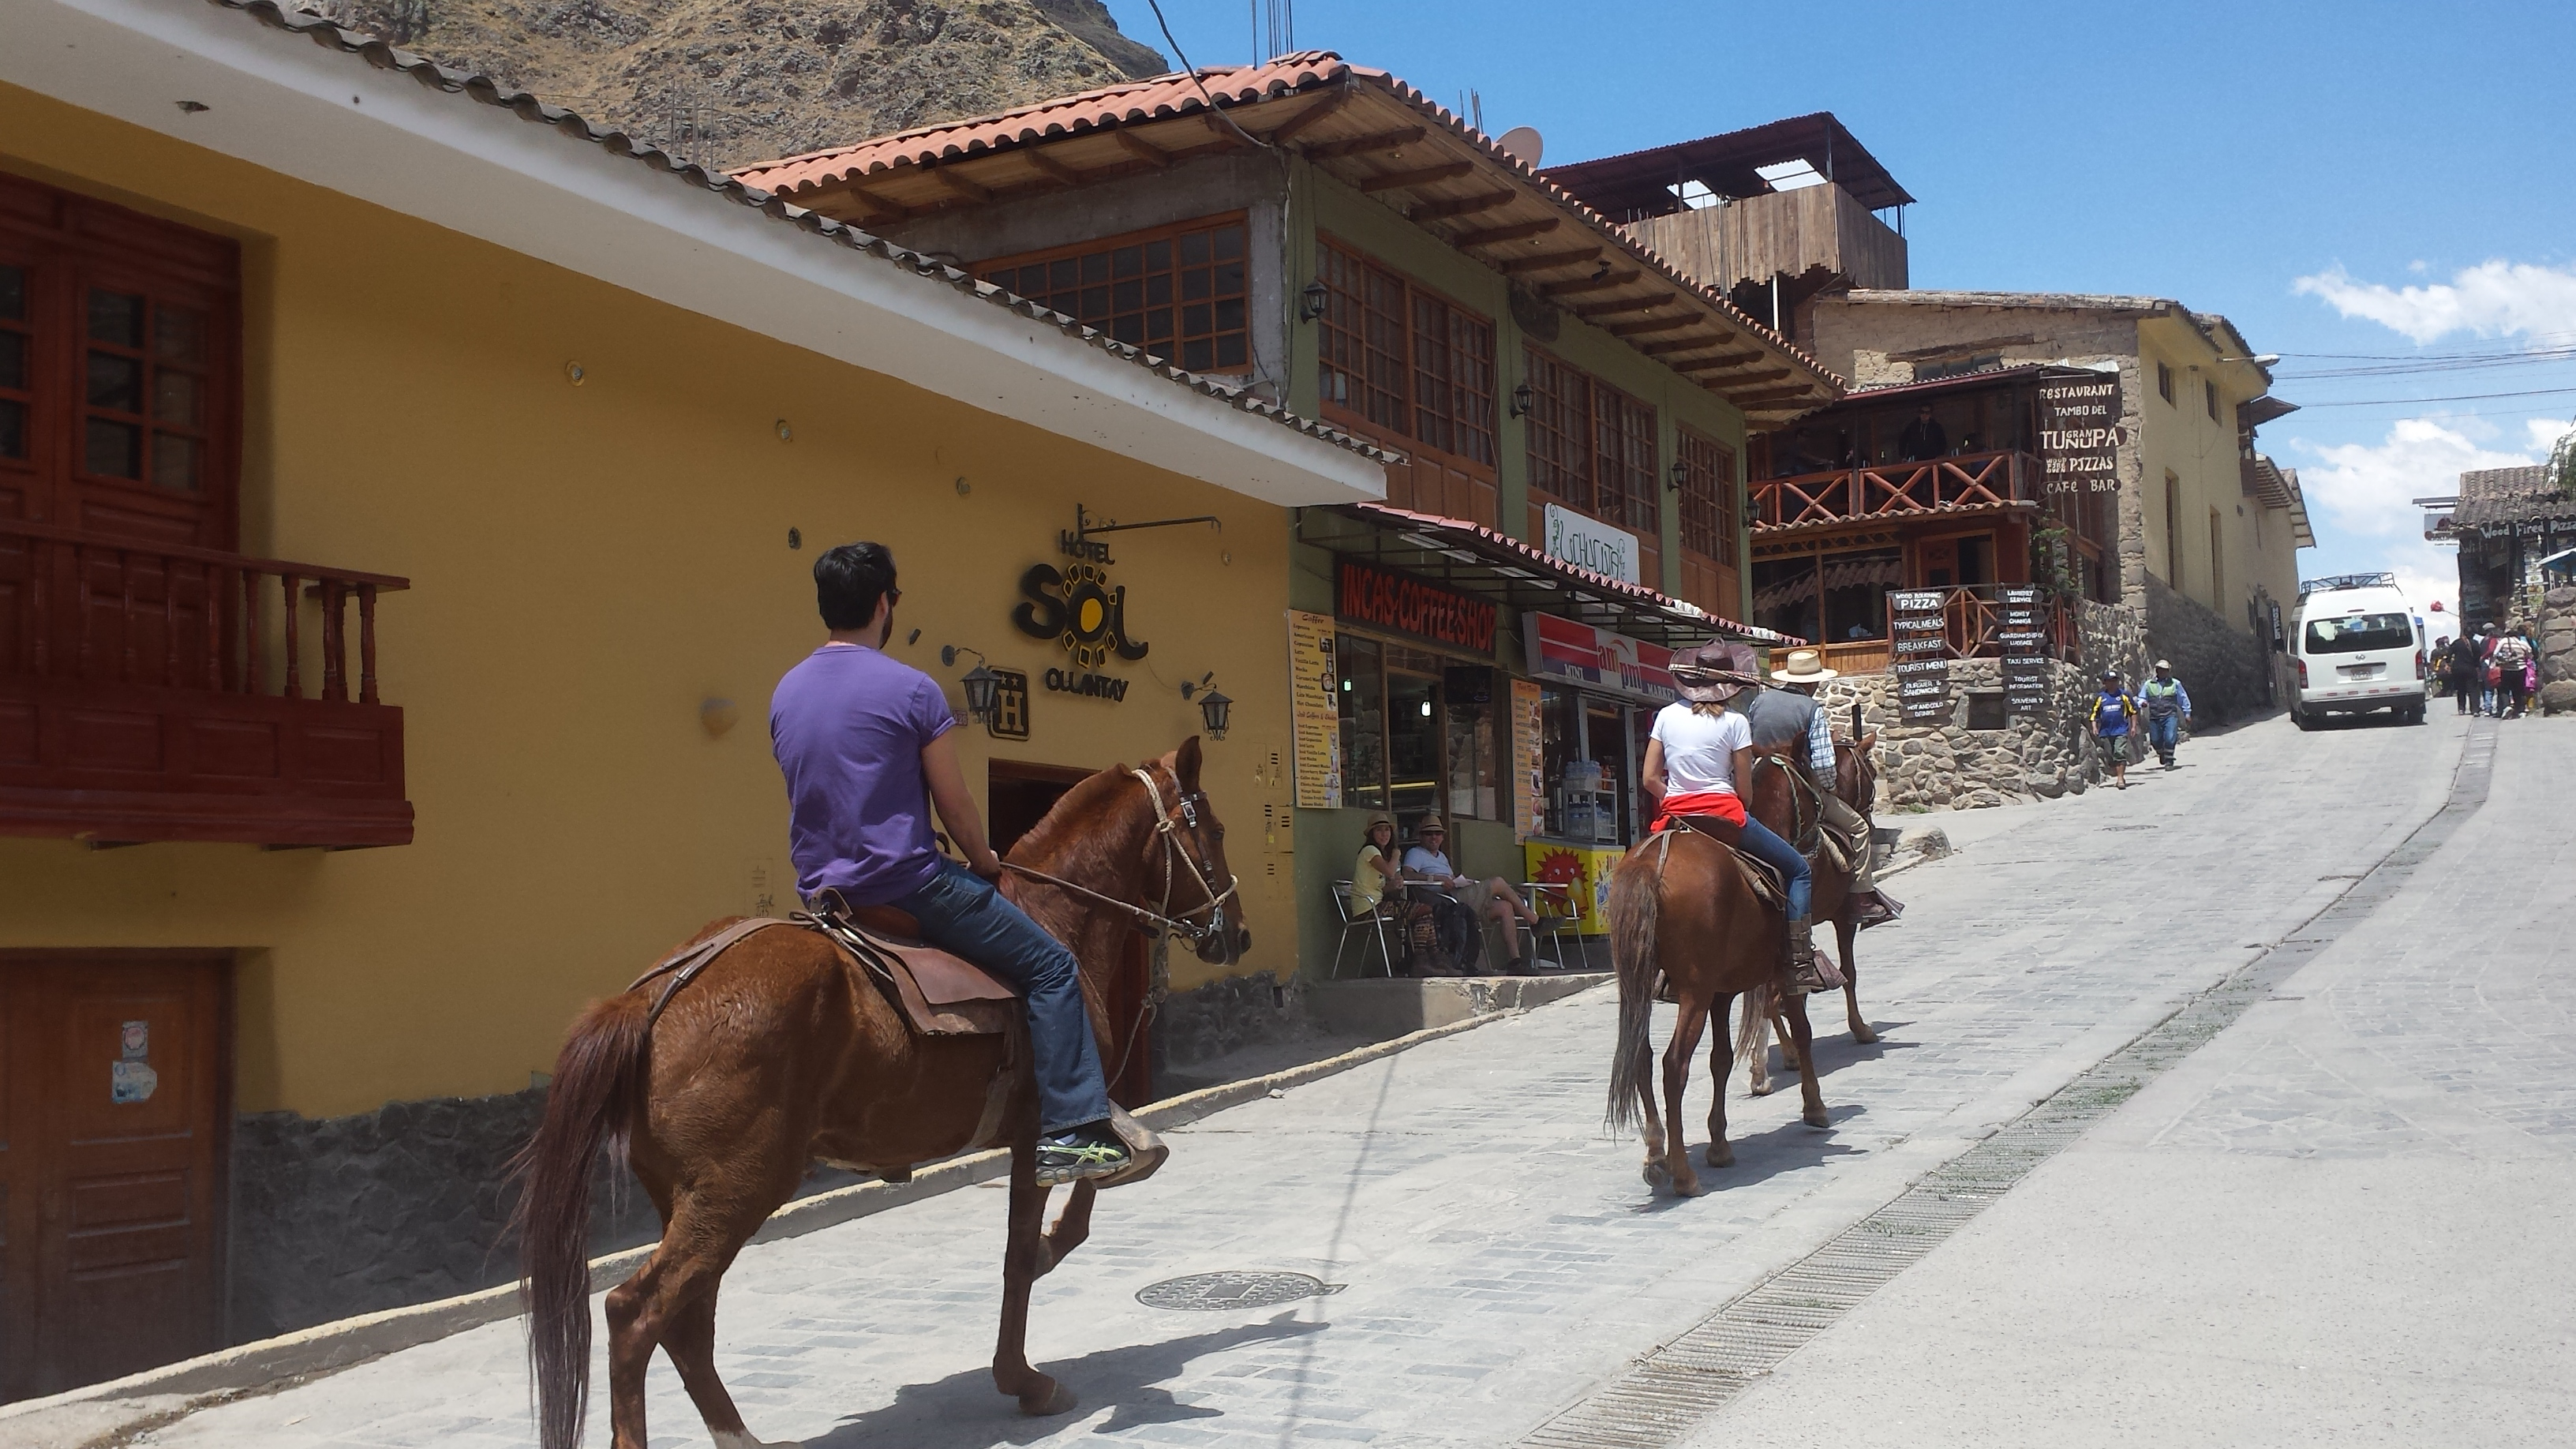 Day 2 - Arrival in Cusco and transfer to Ollantaytambo